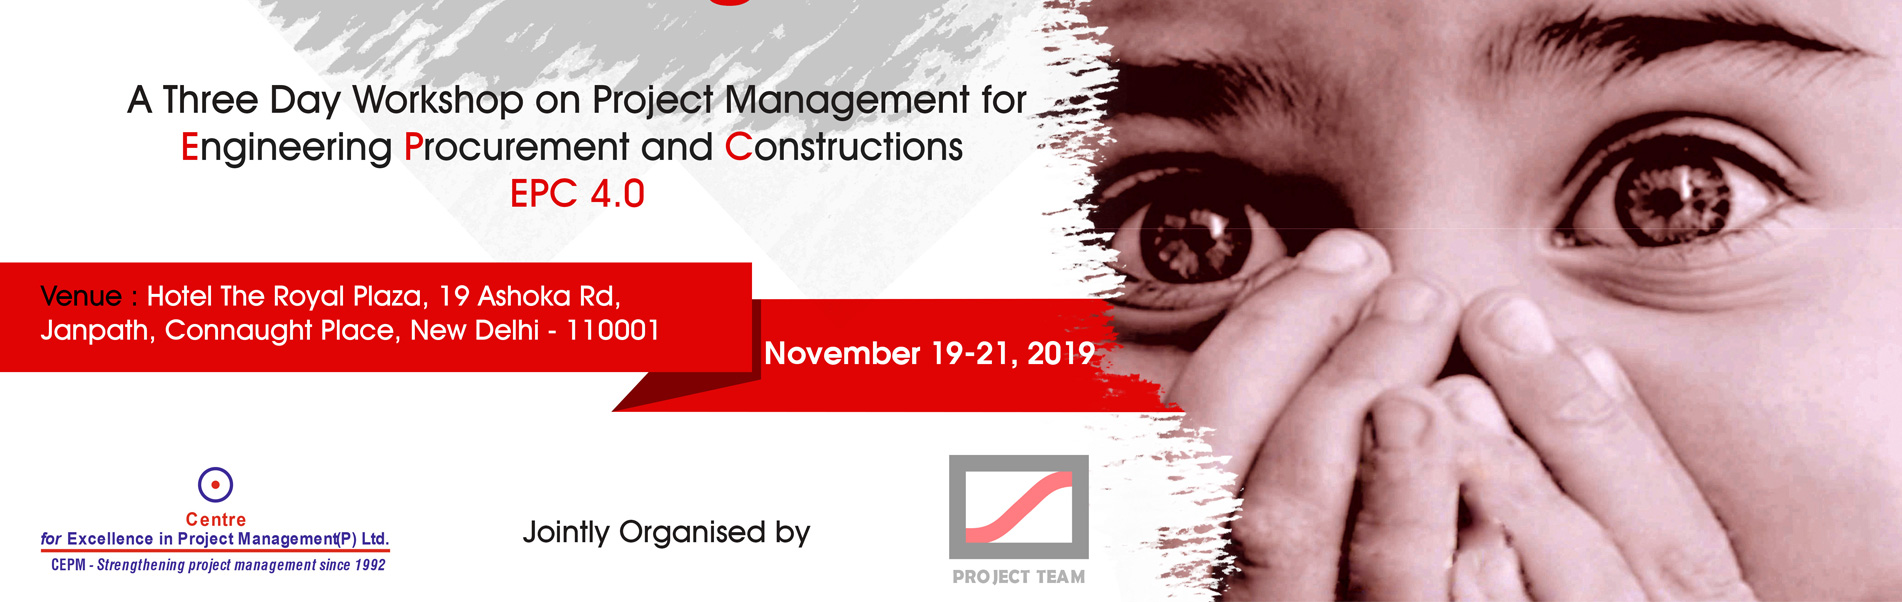 Project Management for EPC 19-21 November 2019